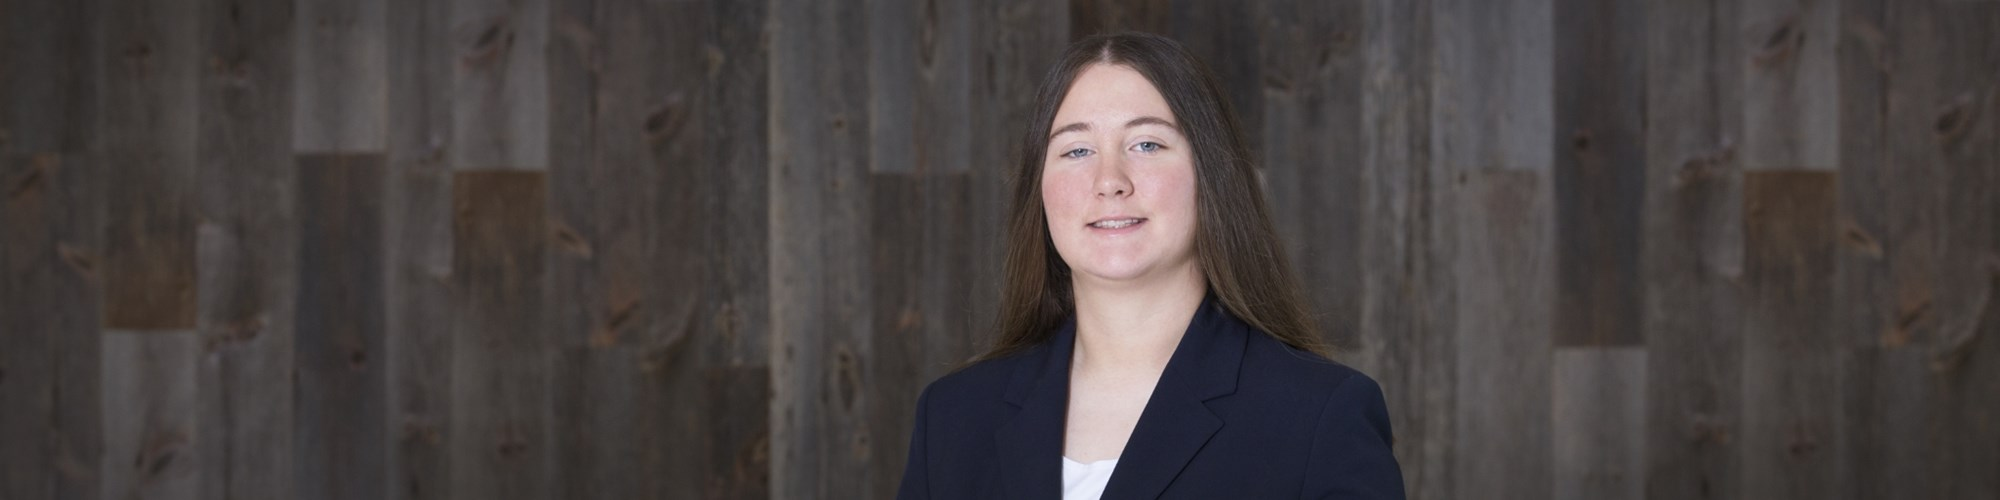 bethany fogerty commercial litigation lawyer willcox savage